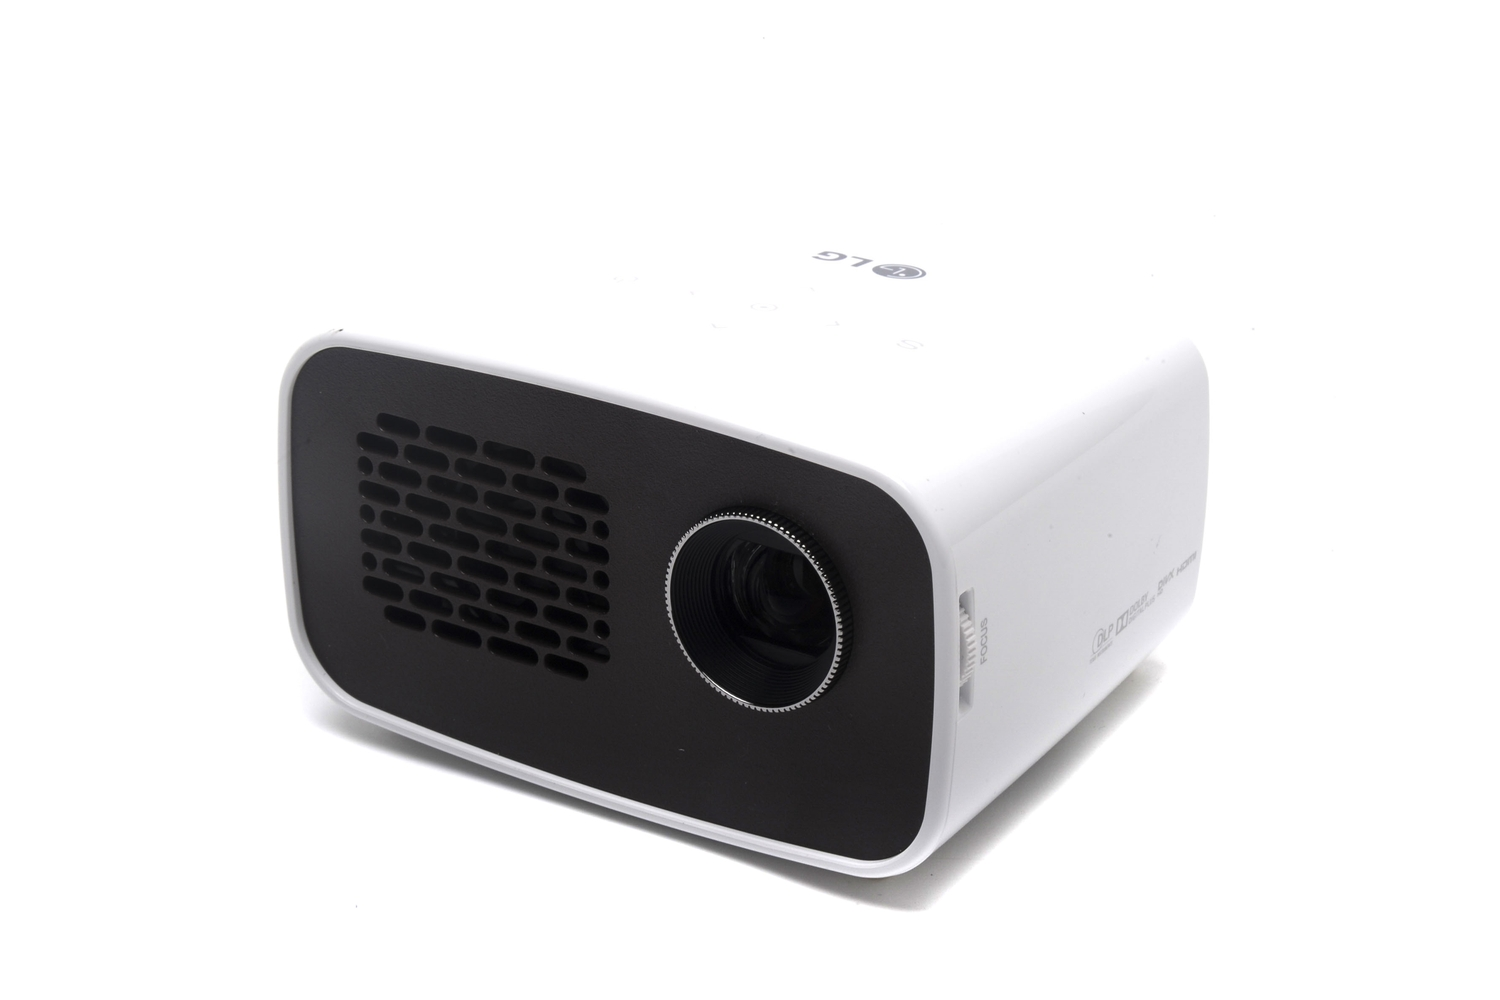 Lg ph300 user reviews projectors portable projectors for Portable projector reviews